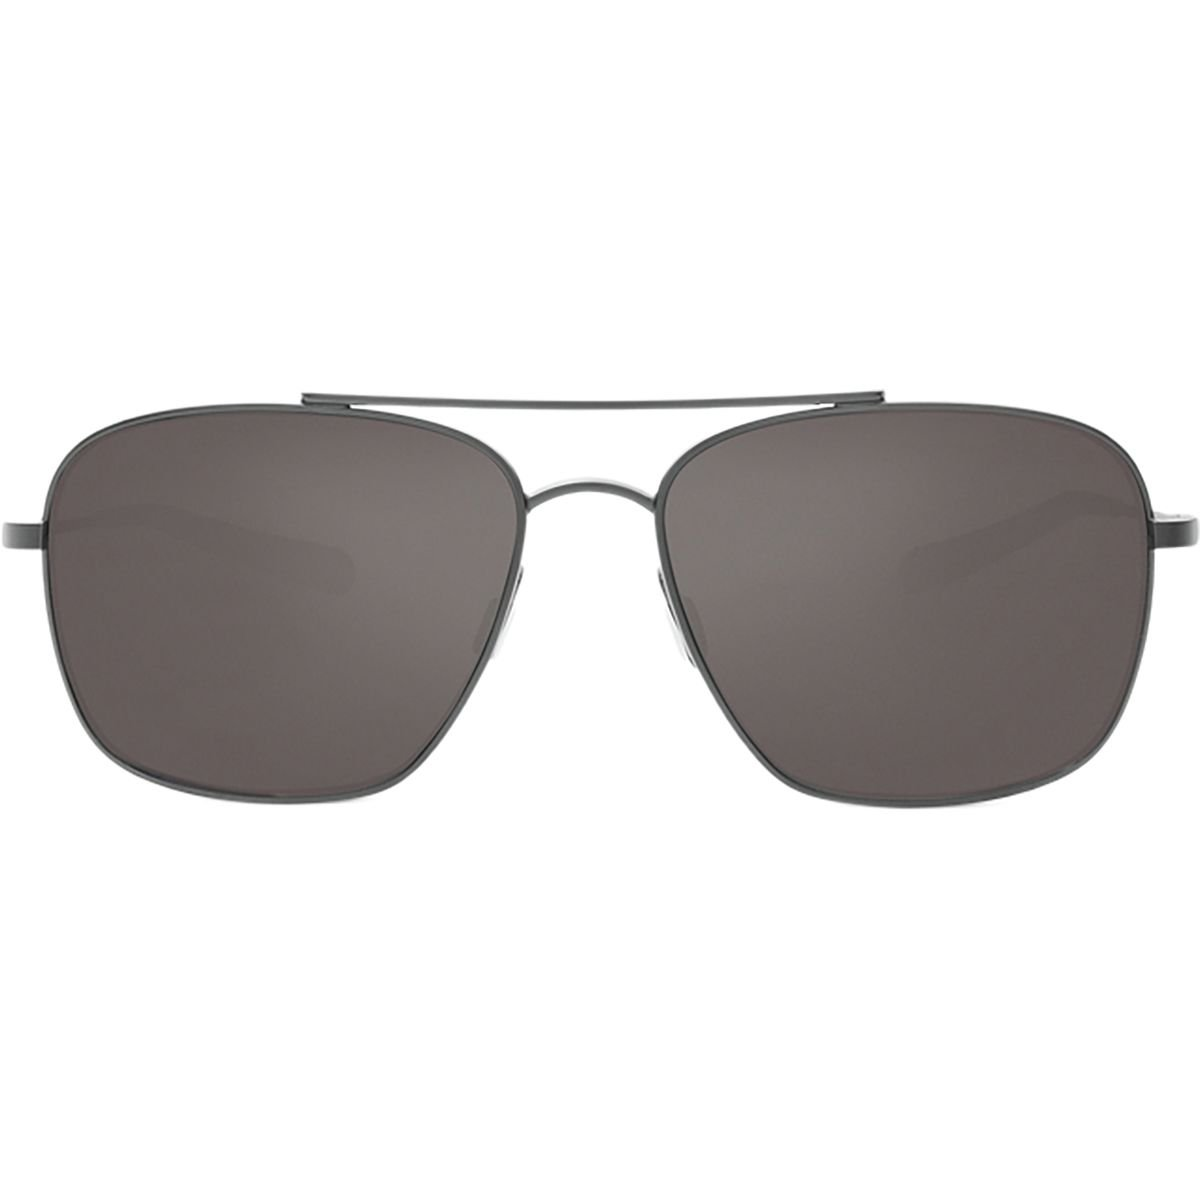 Direct CAN185OGGLP Costa Del Mar Canaveral Sunglasses Brushed Gray//Gray 580Glass Pro-Motion Distributing